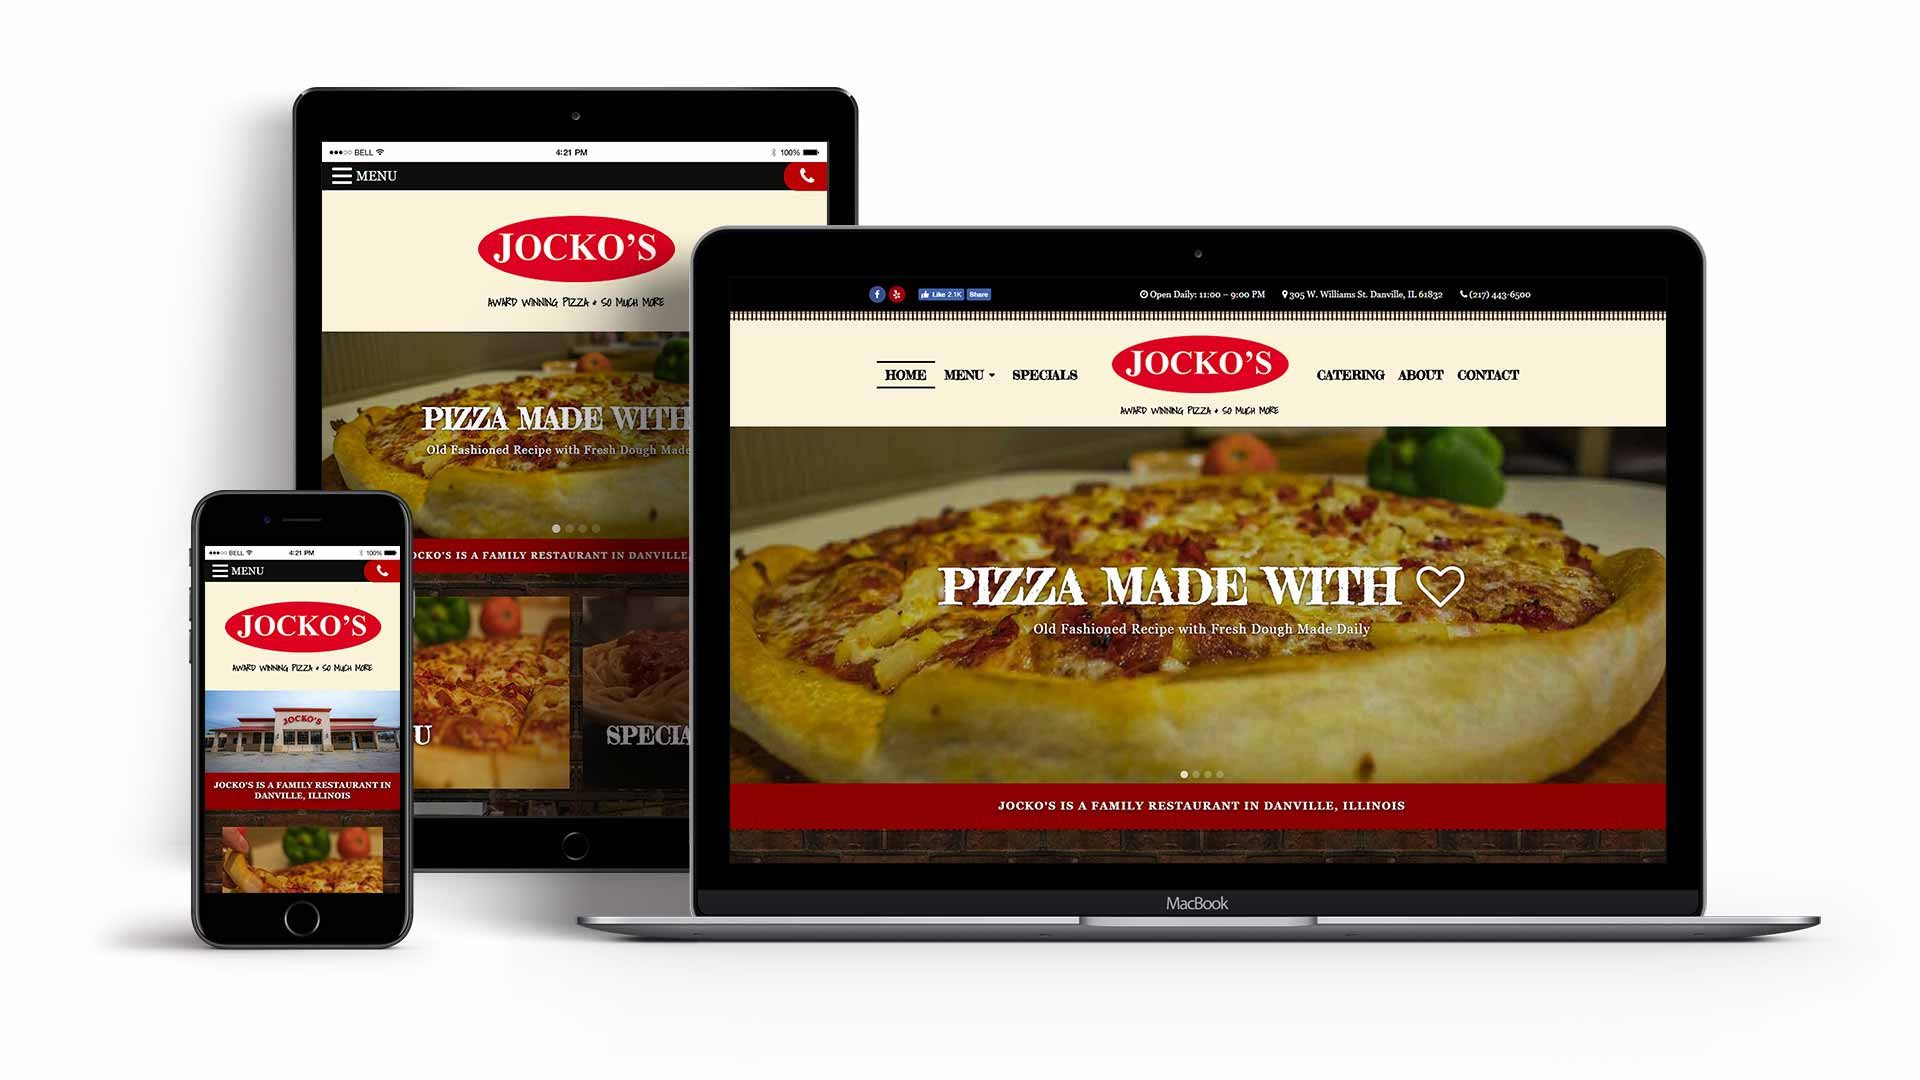 jockos-pizza-website-design